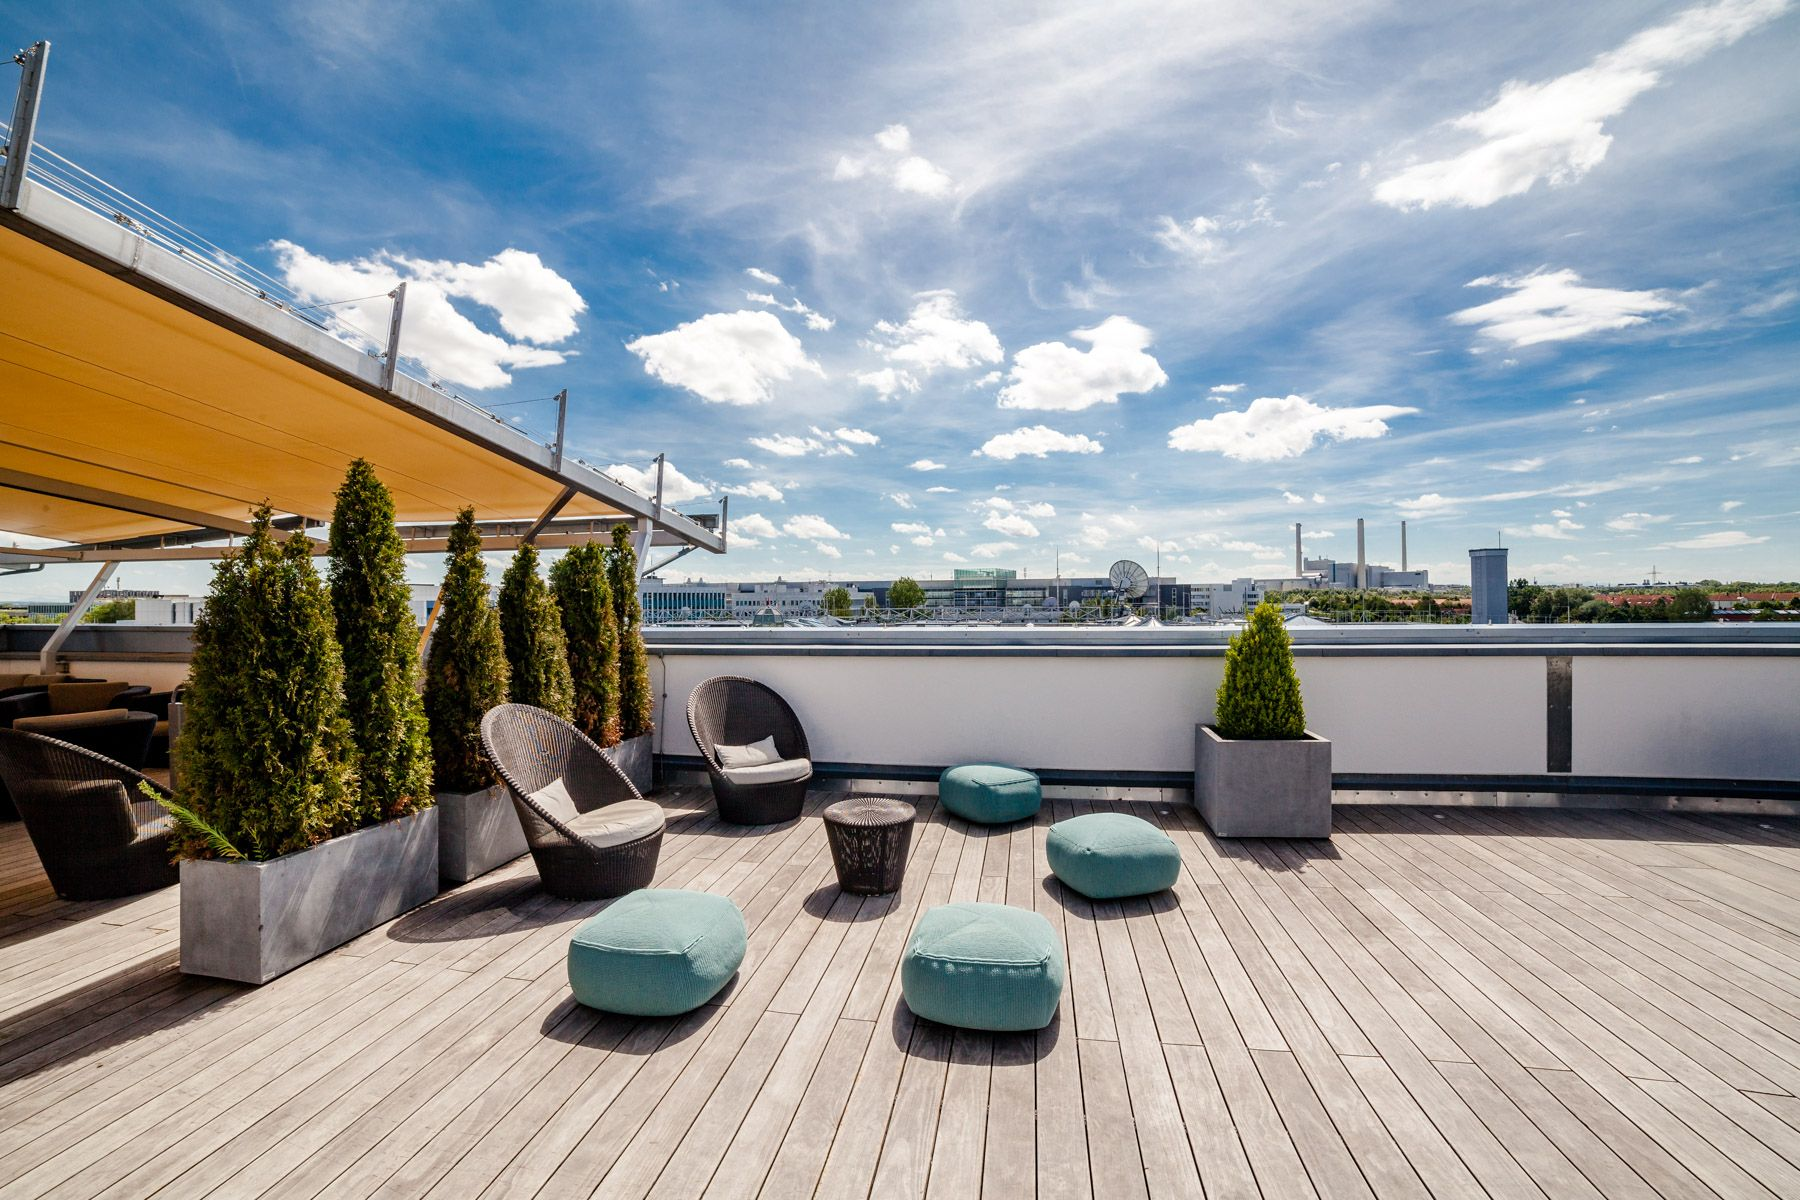 Rooftop Design Magnificent 7 Rooftop Deck And Terrace Designs For Your Next Commercial . Design Inspiration